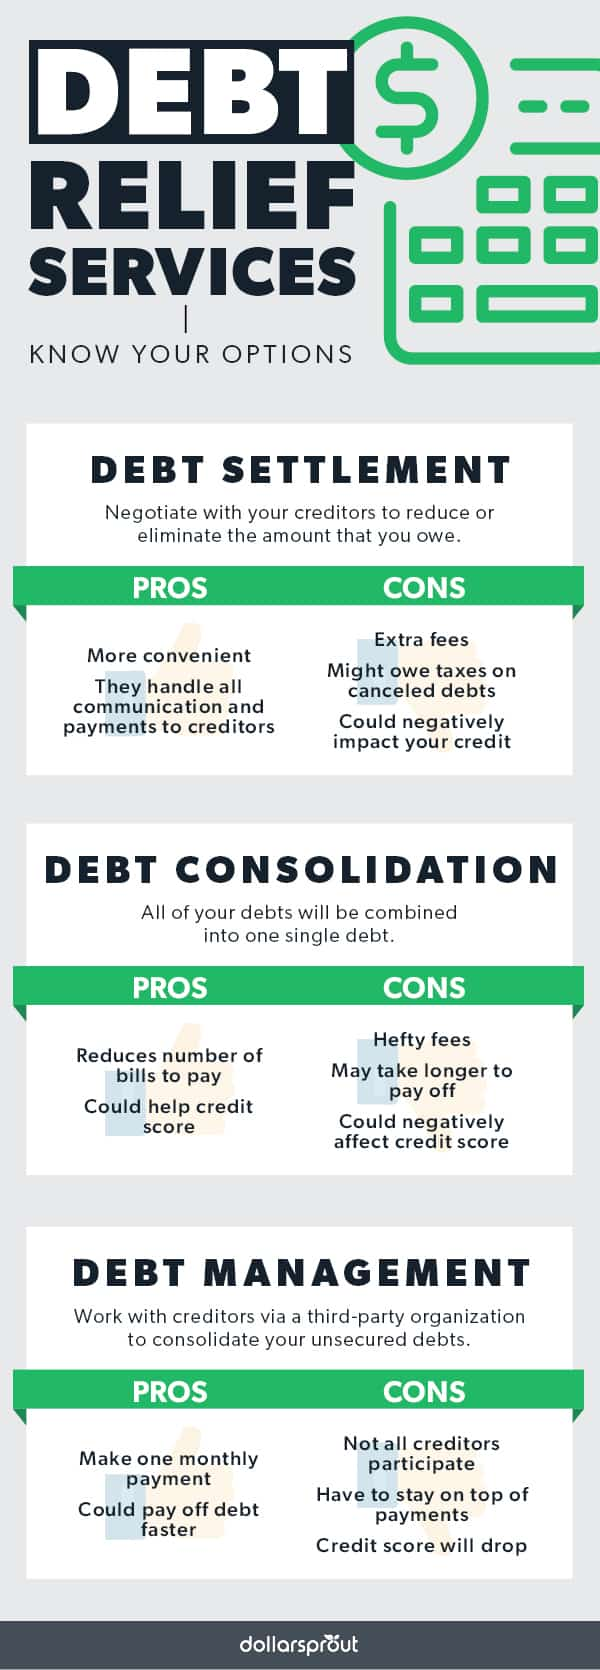 debt relief services infographic